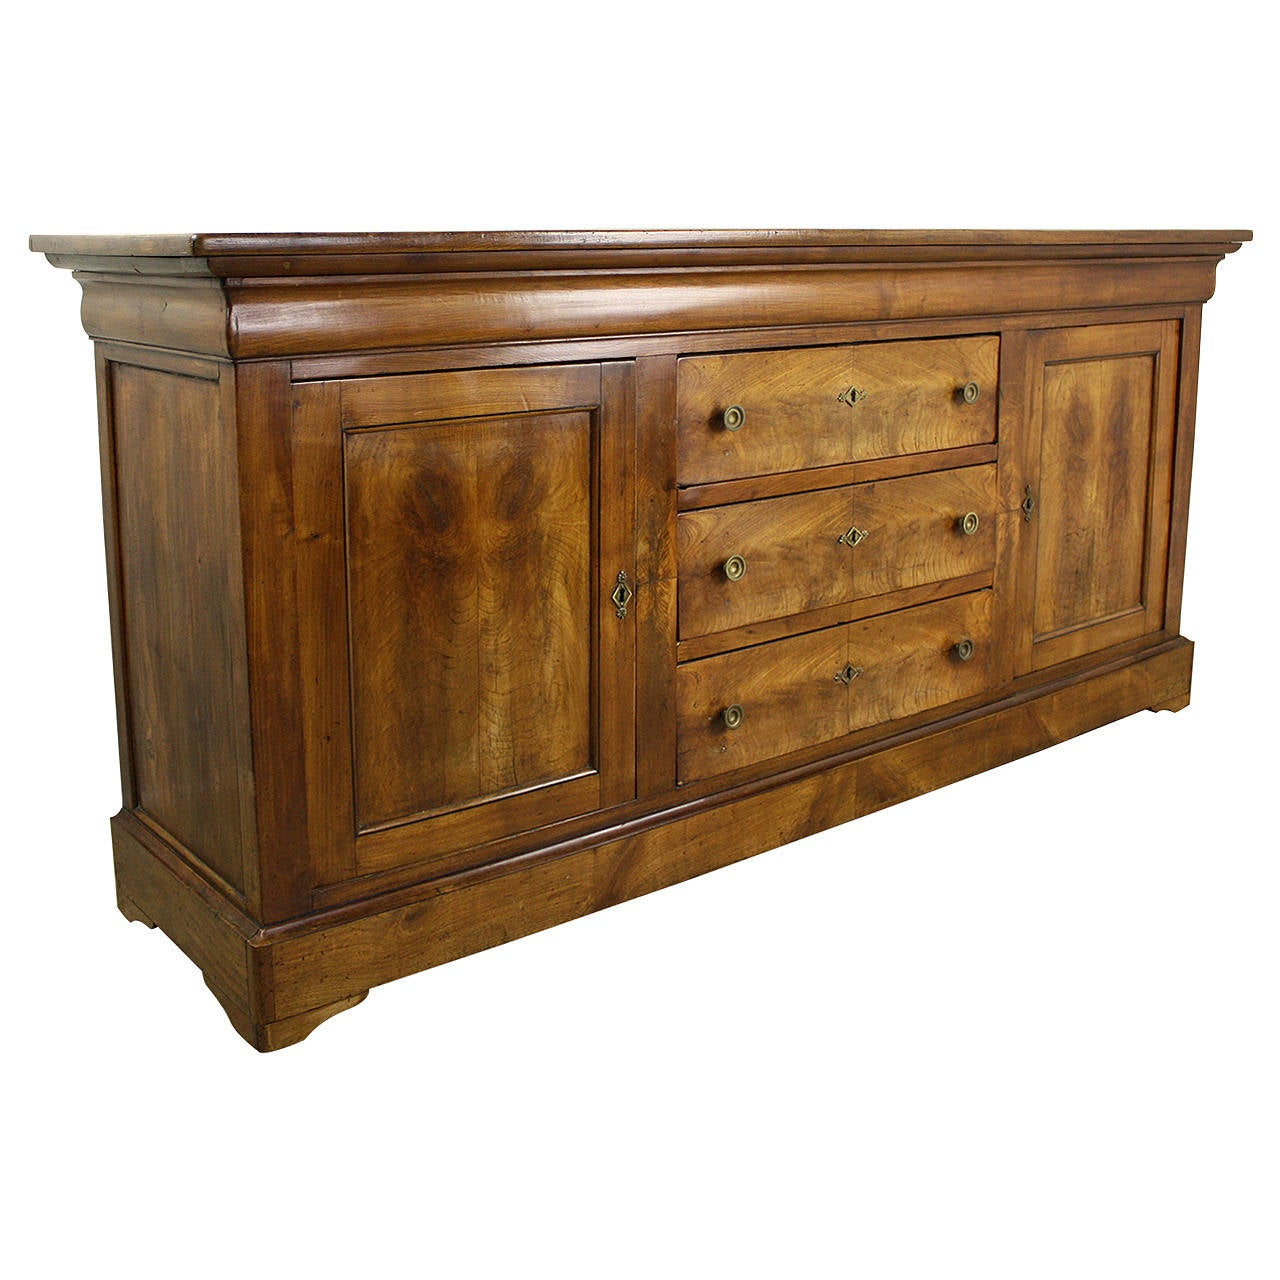 antique french cherry enfilade at 1stdibs. Black Bedroom Furniture Sets. Home Design Ideas